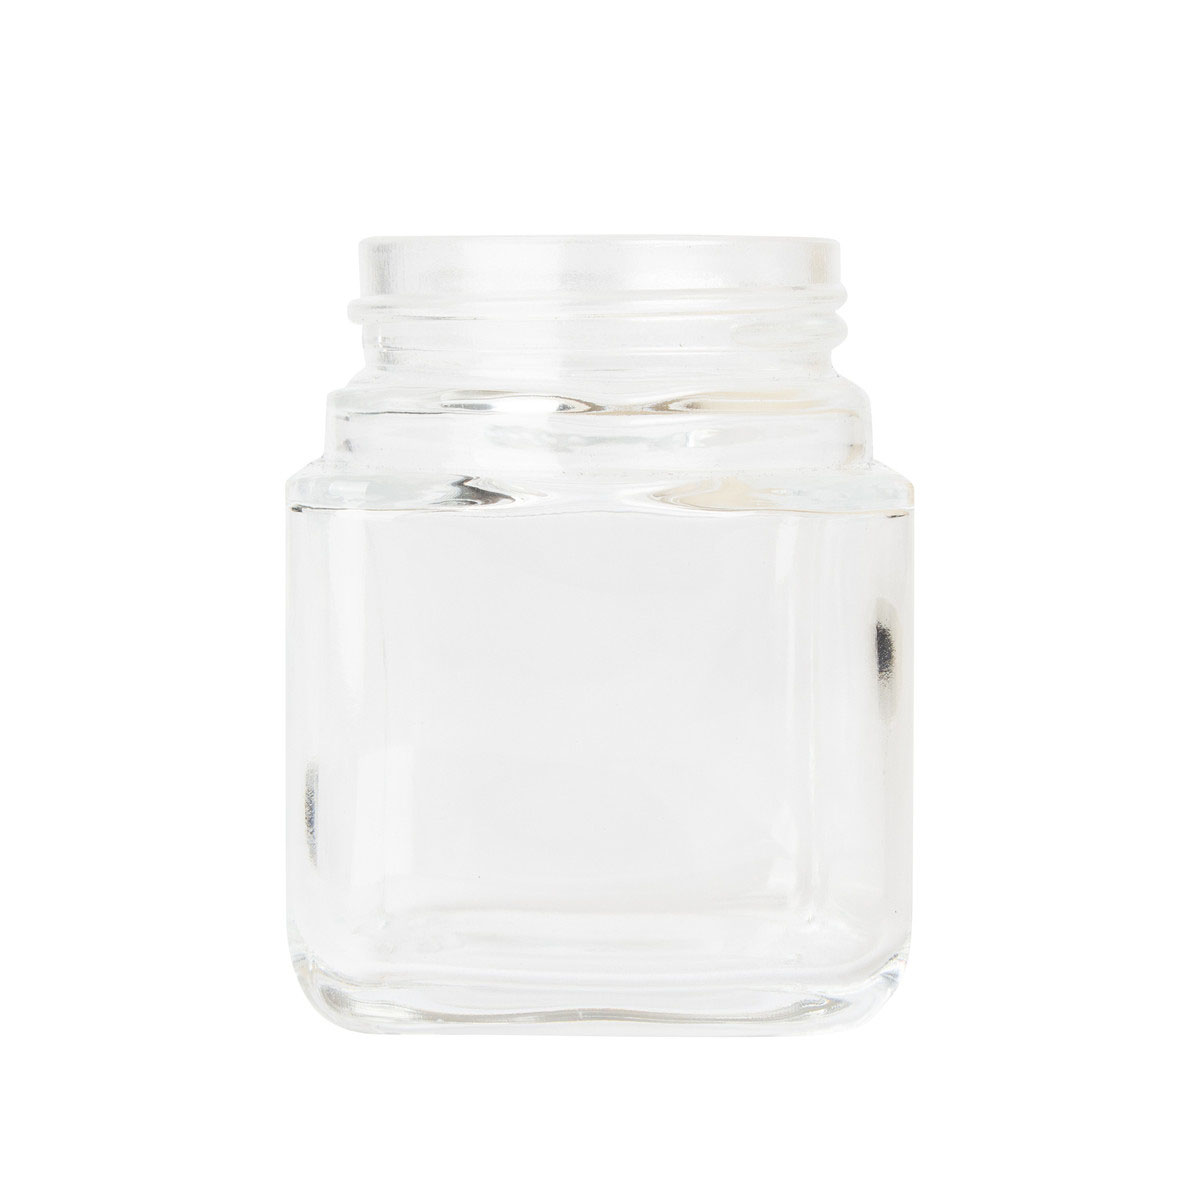 3oz Cube Reserve Glass Jar (80 Qty)